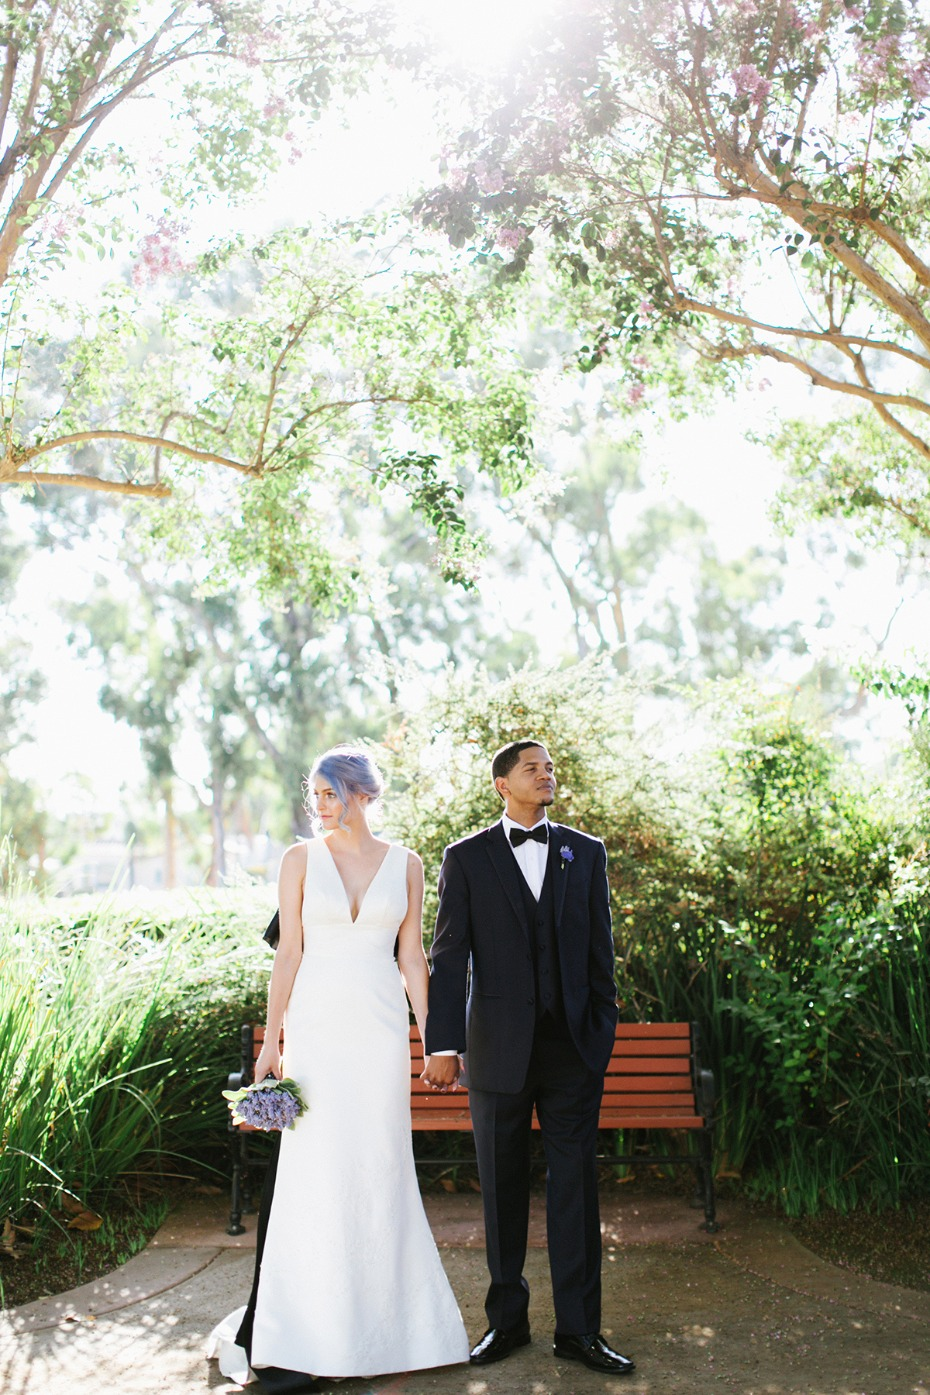 A very modern lavender wedding